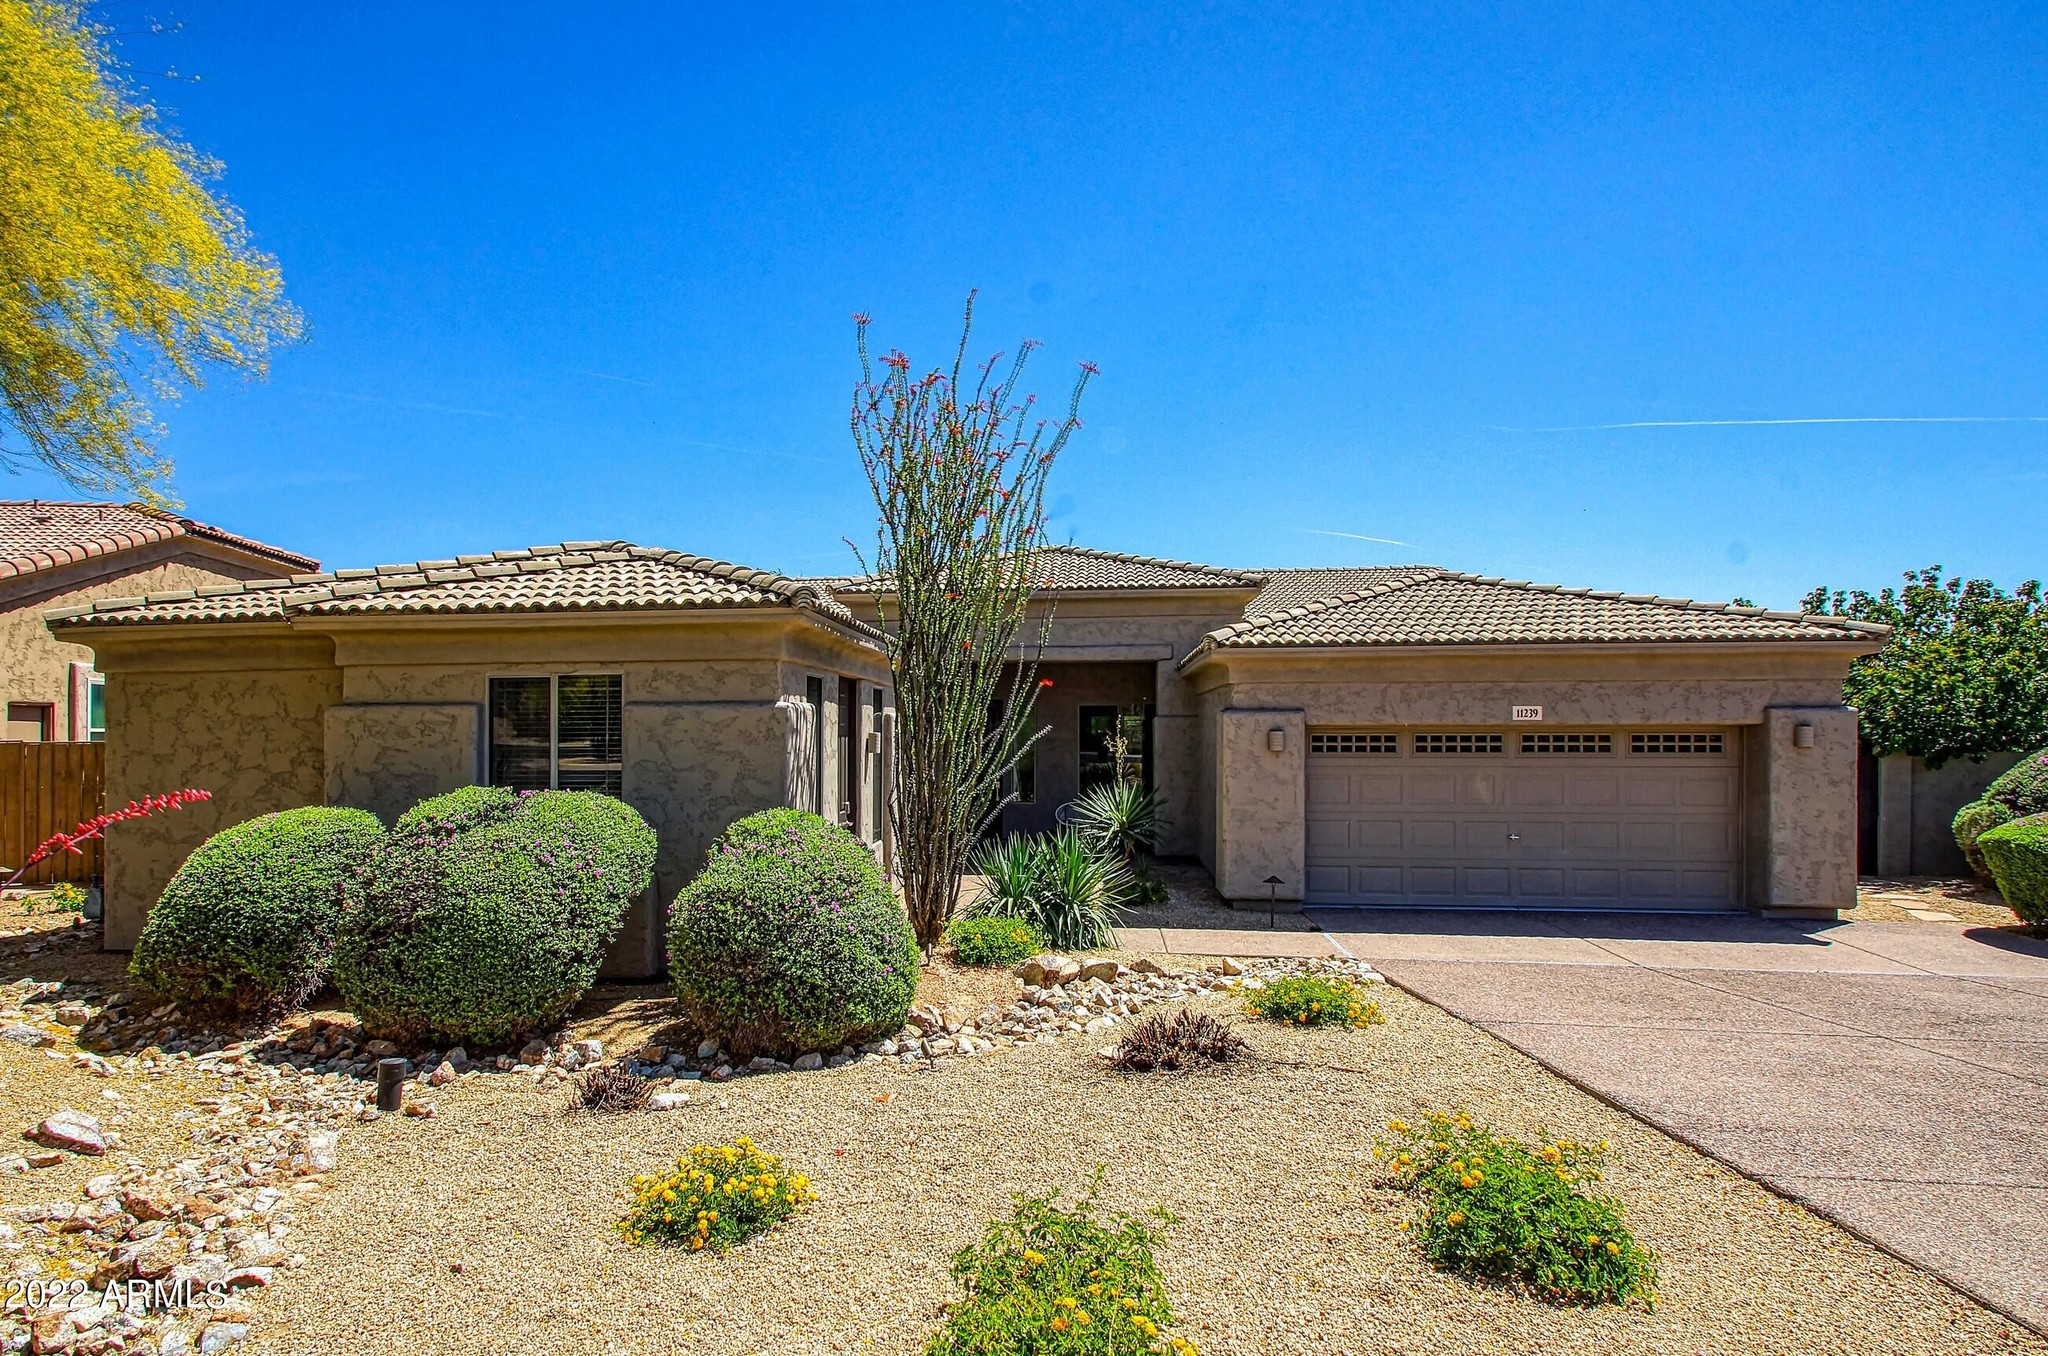 Renovated 4-Bedroom House In Dynamite Foothills